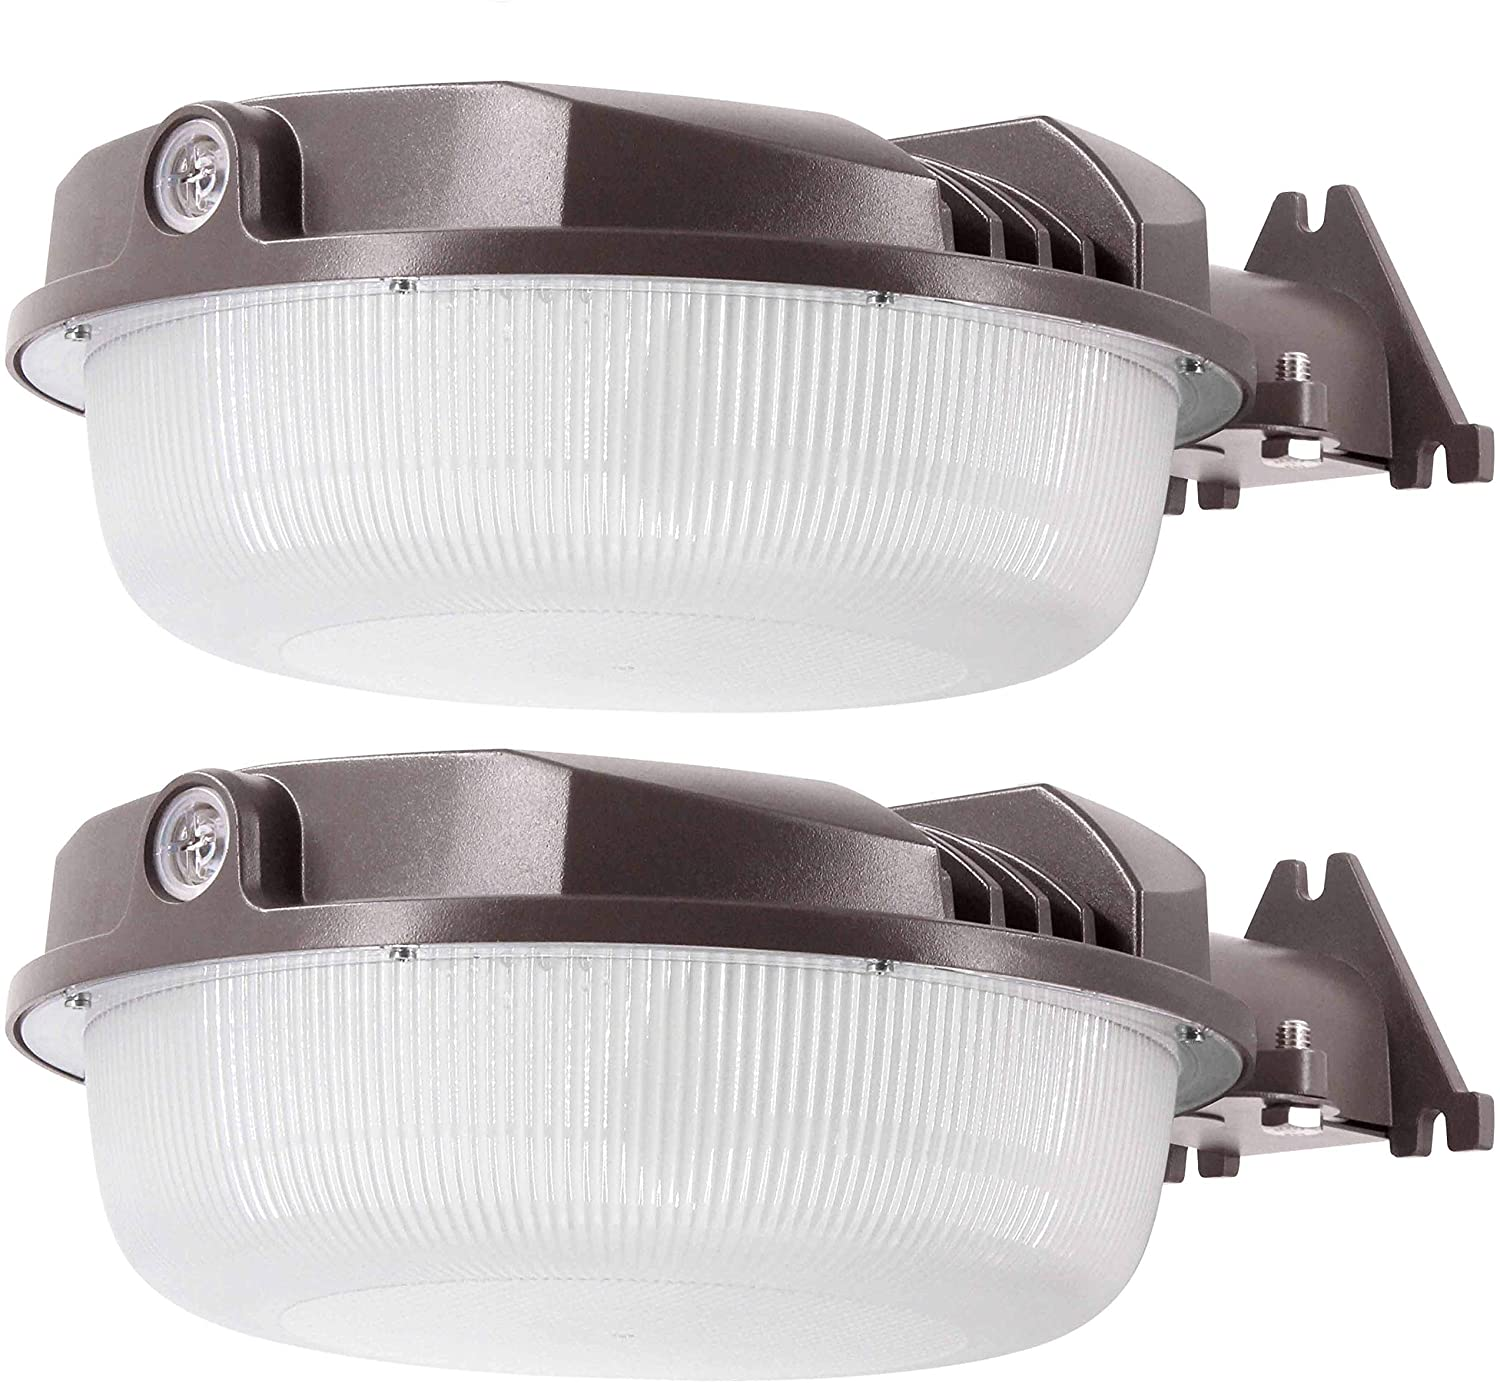 2Pack 70W LED Yard Light for LED Dusk to Dawn Light - Brightest 70 Watt - 9800 Lumens! - Perfect for use as an LED Yard Light, LED Barn Light or LED Security Light Photocell Included 2PK for 70W